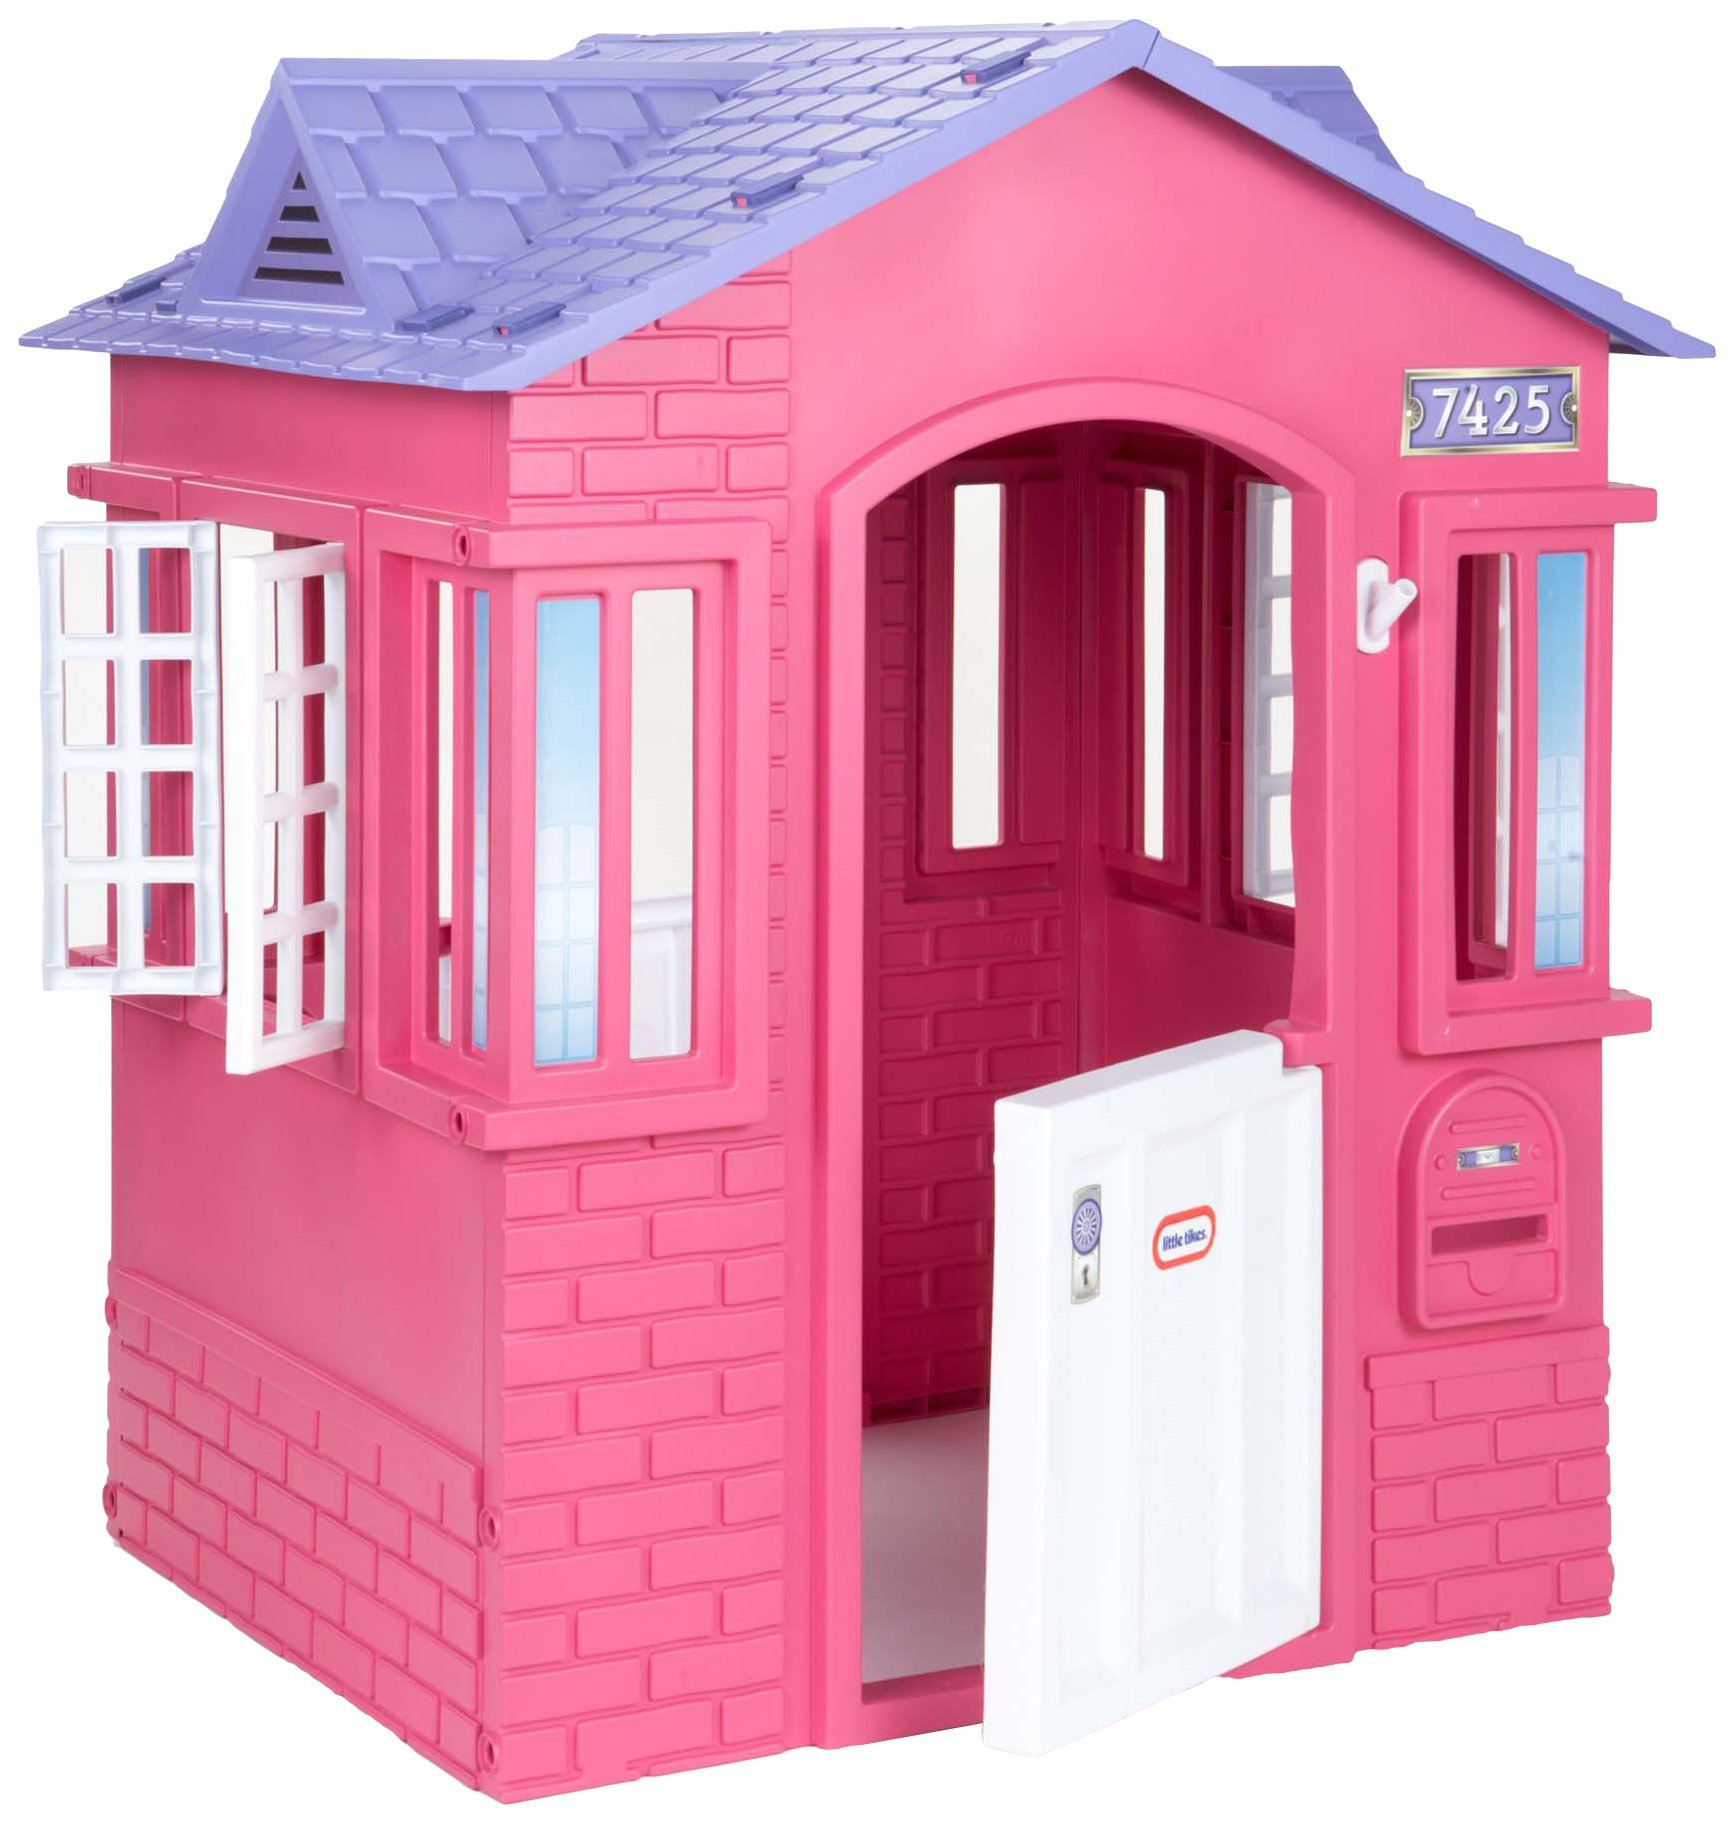 Little Tikes Princess Cape Cottage Playhouse, Pink by Little Tikes